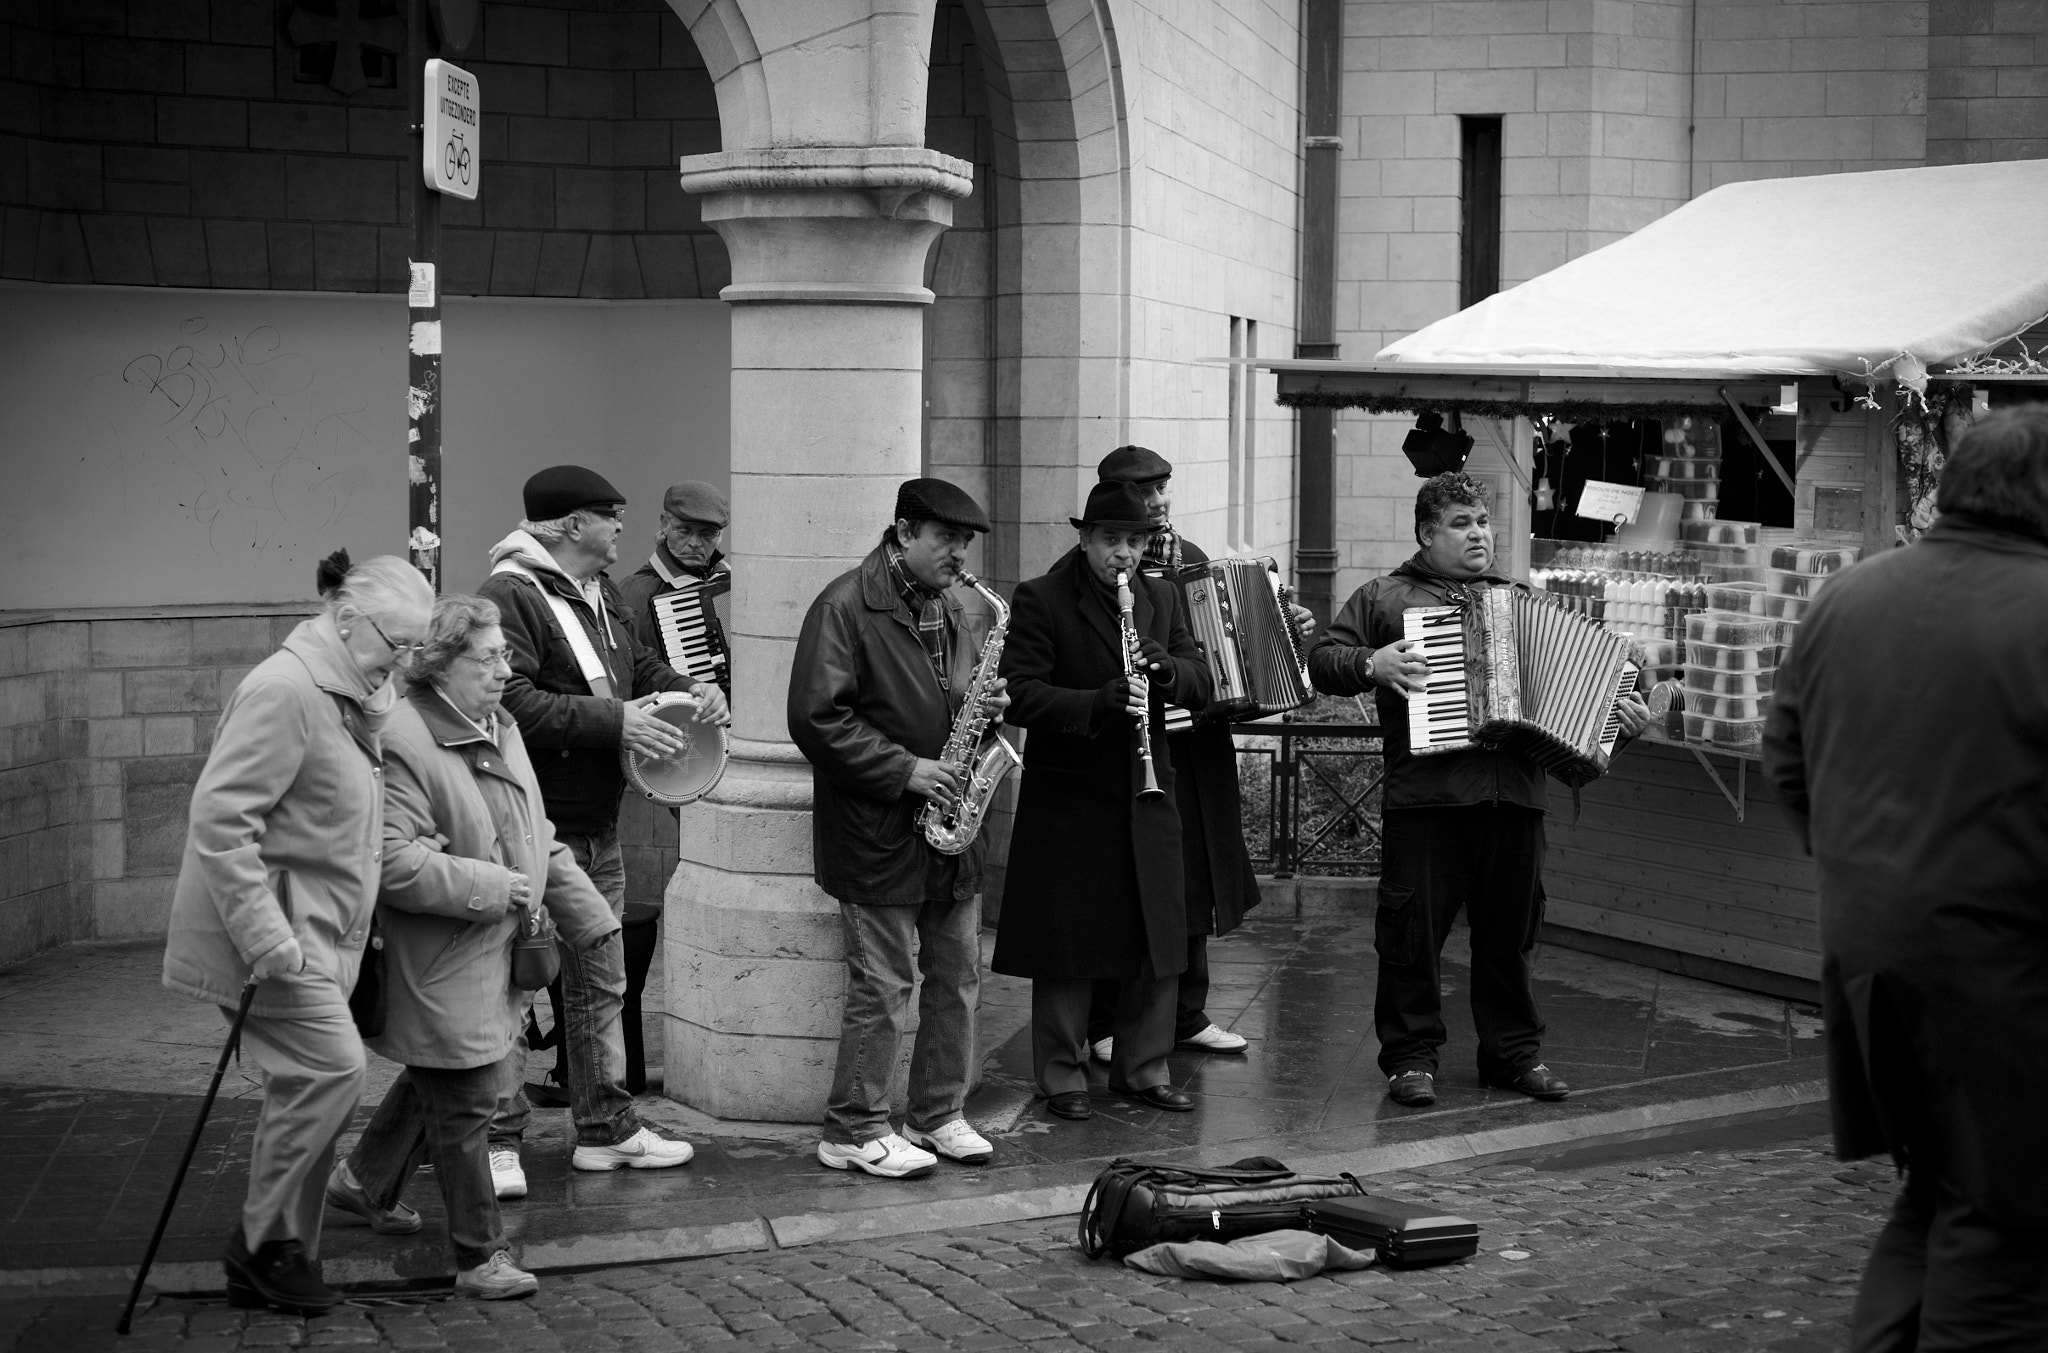 Photograph Street Band by Paulo Teixeira on 500px